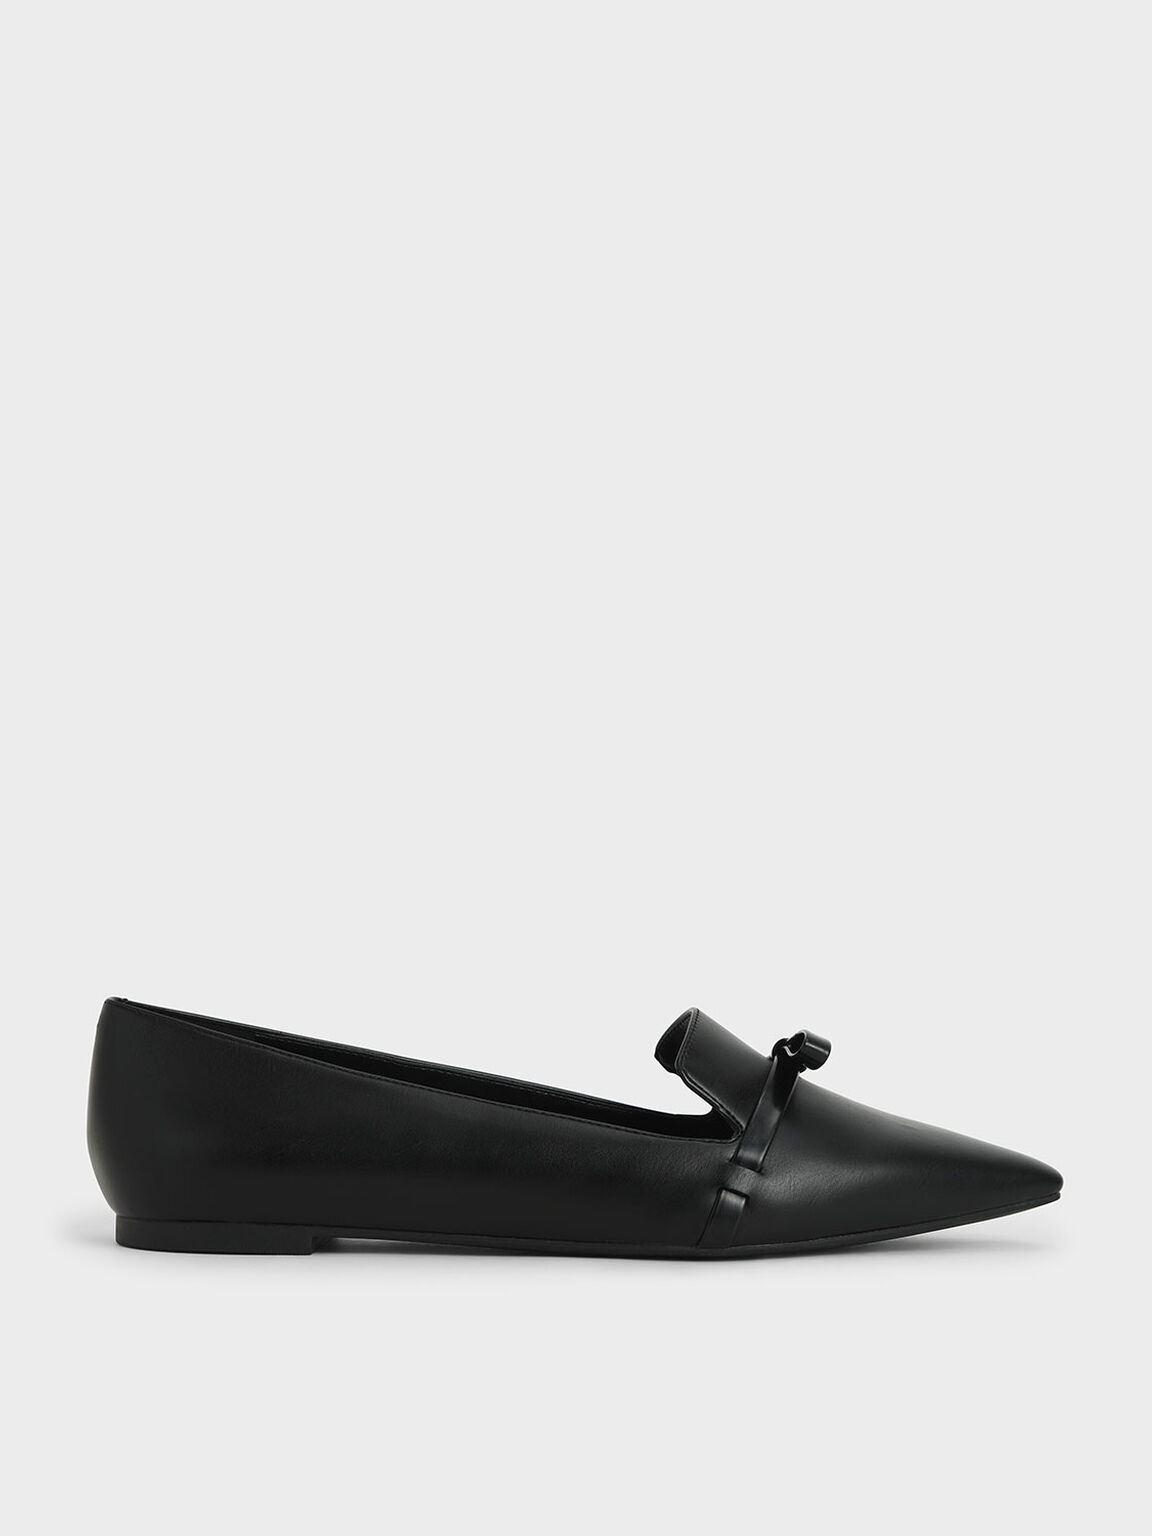 Bow Tie Loafers, Black, hi-res